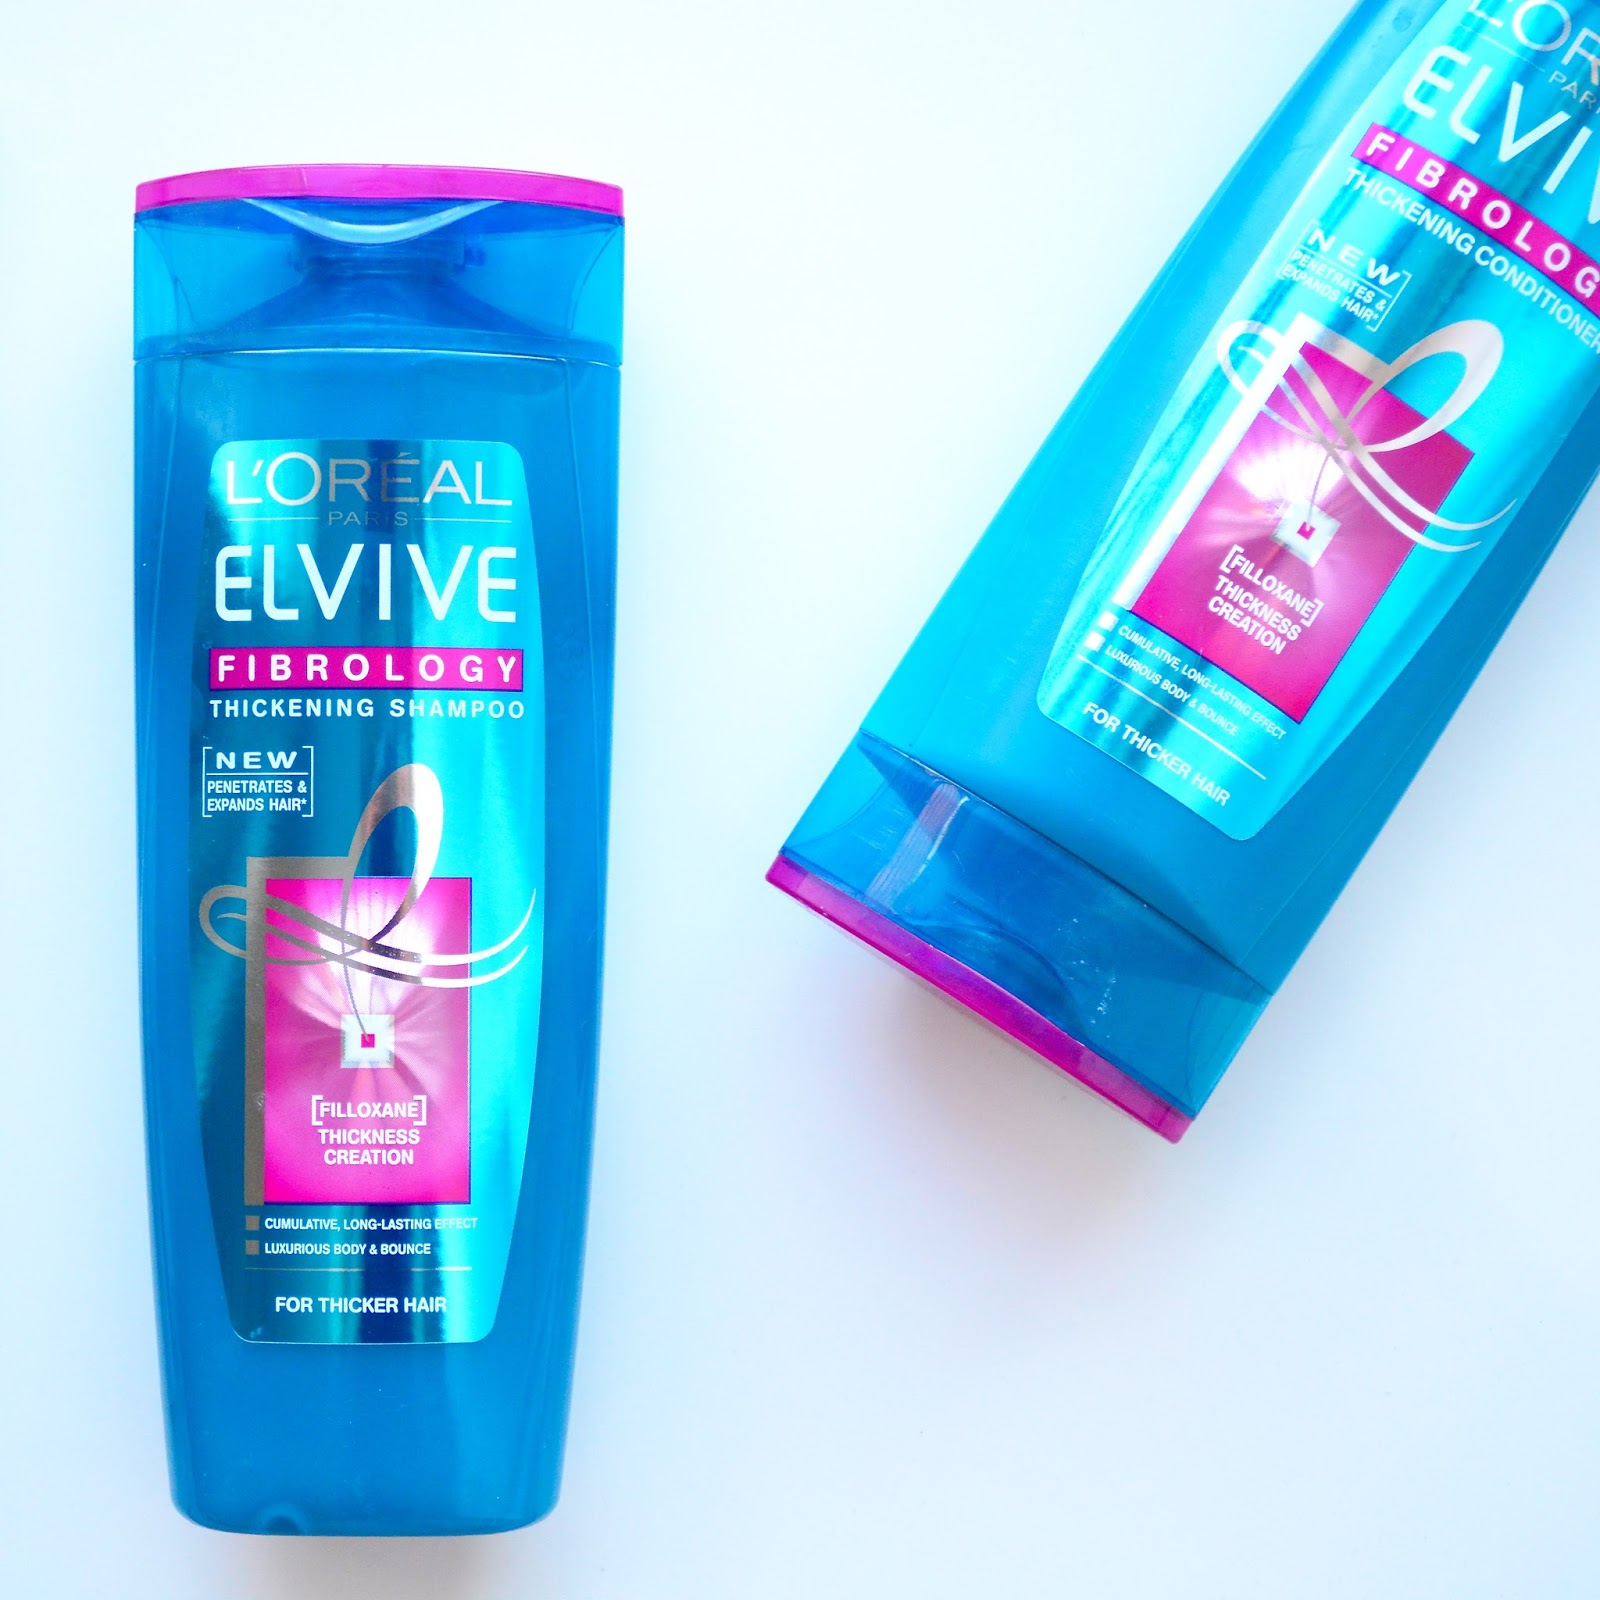 L'Oreal Elvive Fibrology Thickening Shampoo & Conditioner